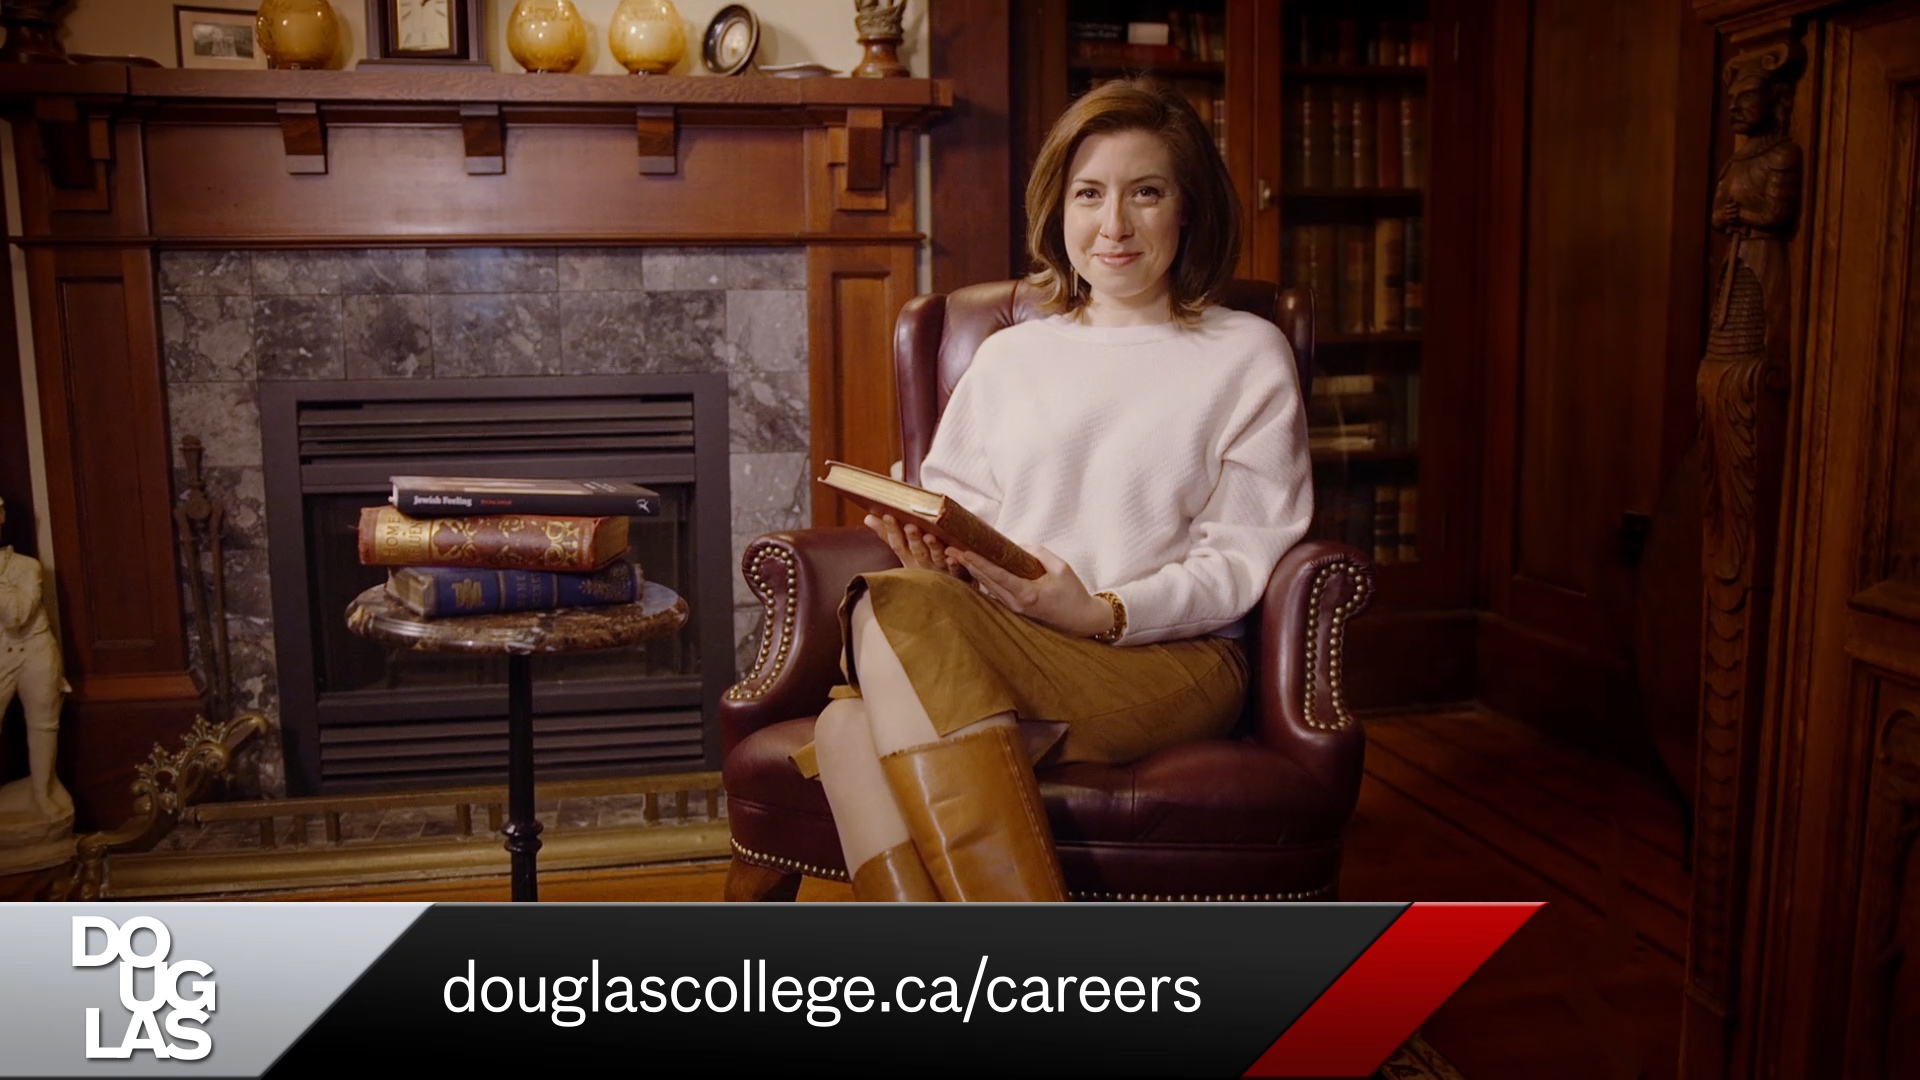 Douglas College Top Employer 2016 Web Ad